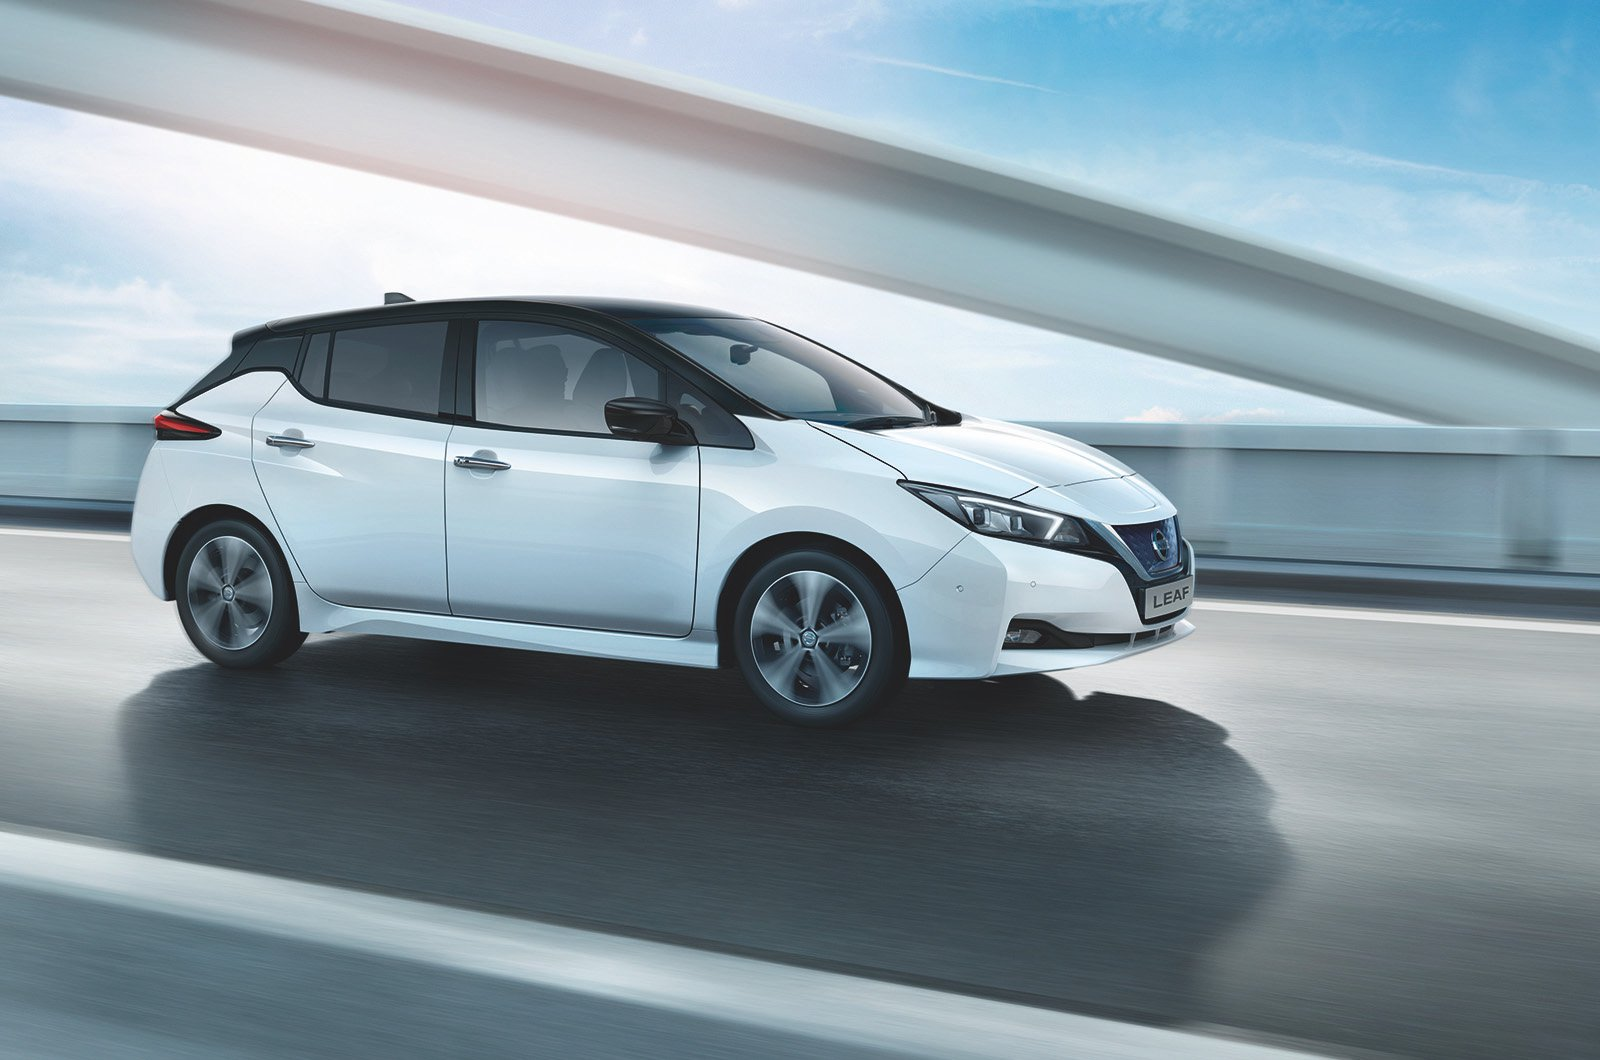 We asked Nissan UK's experts to respond to the top queries from fleet managers and company car drivers about going electric